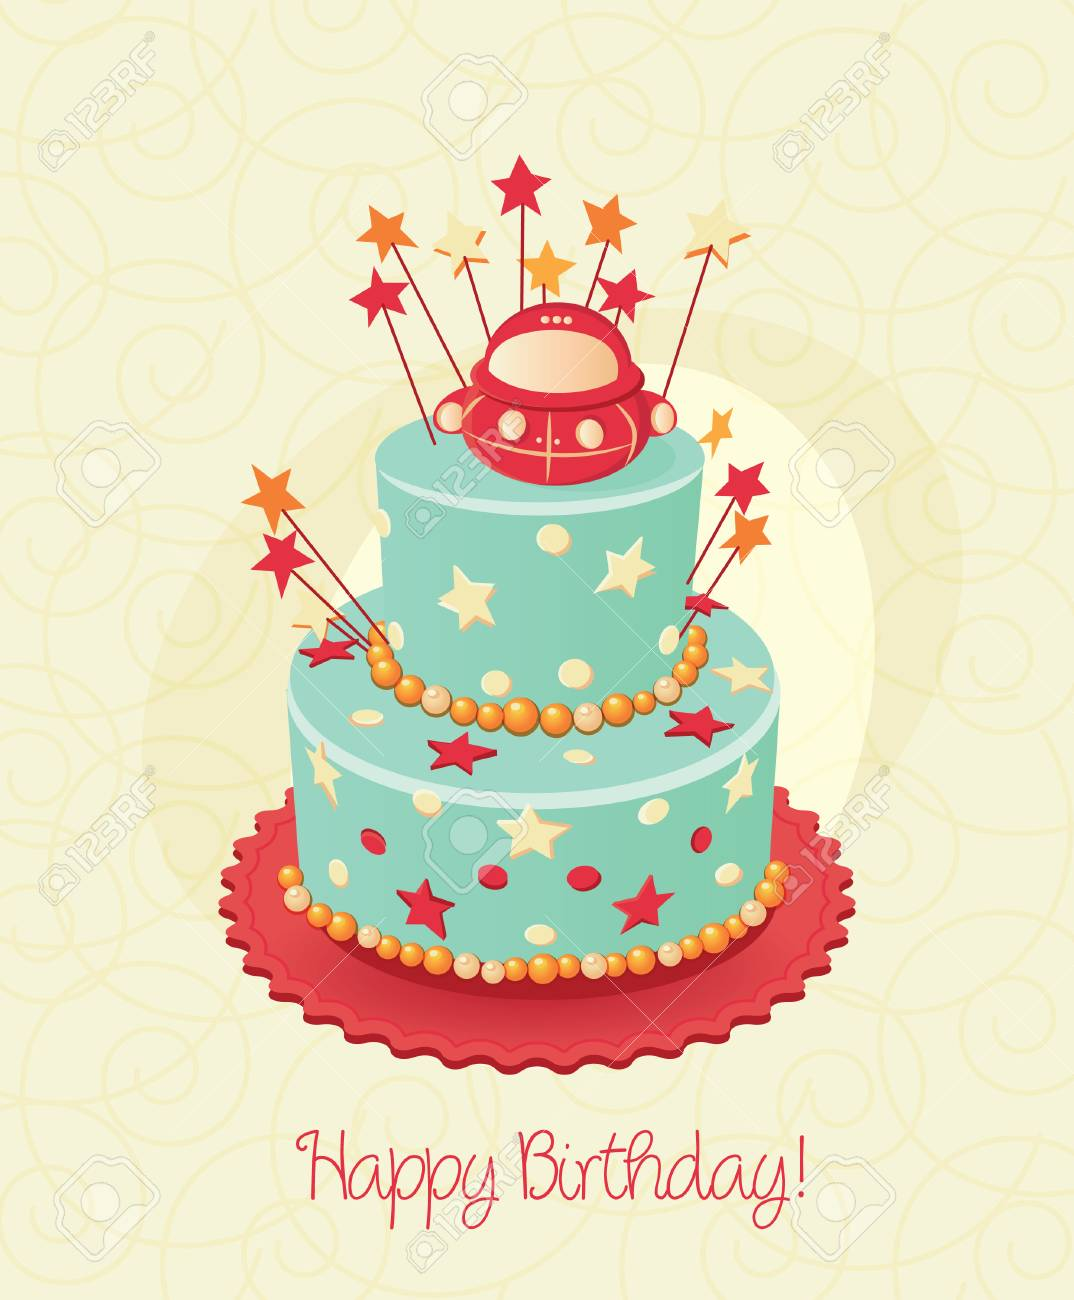 Birthday Cake Poster Vector Candle Royalty Free Cliparts